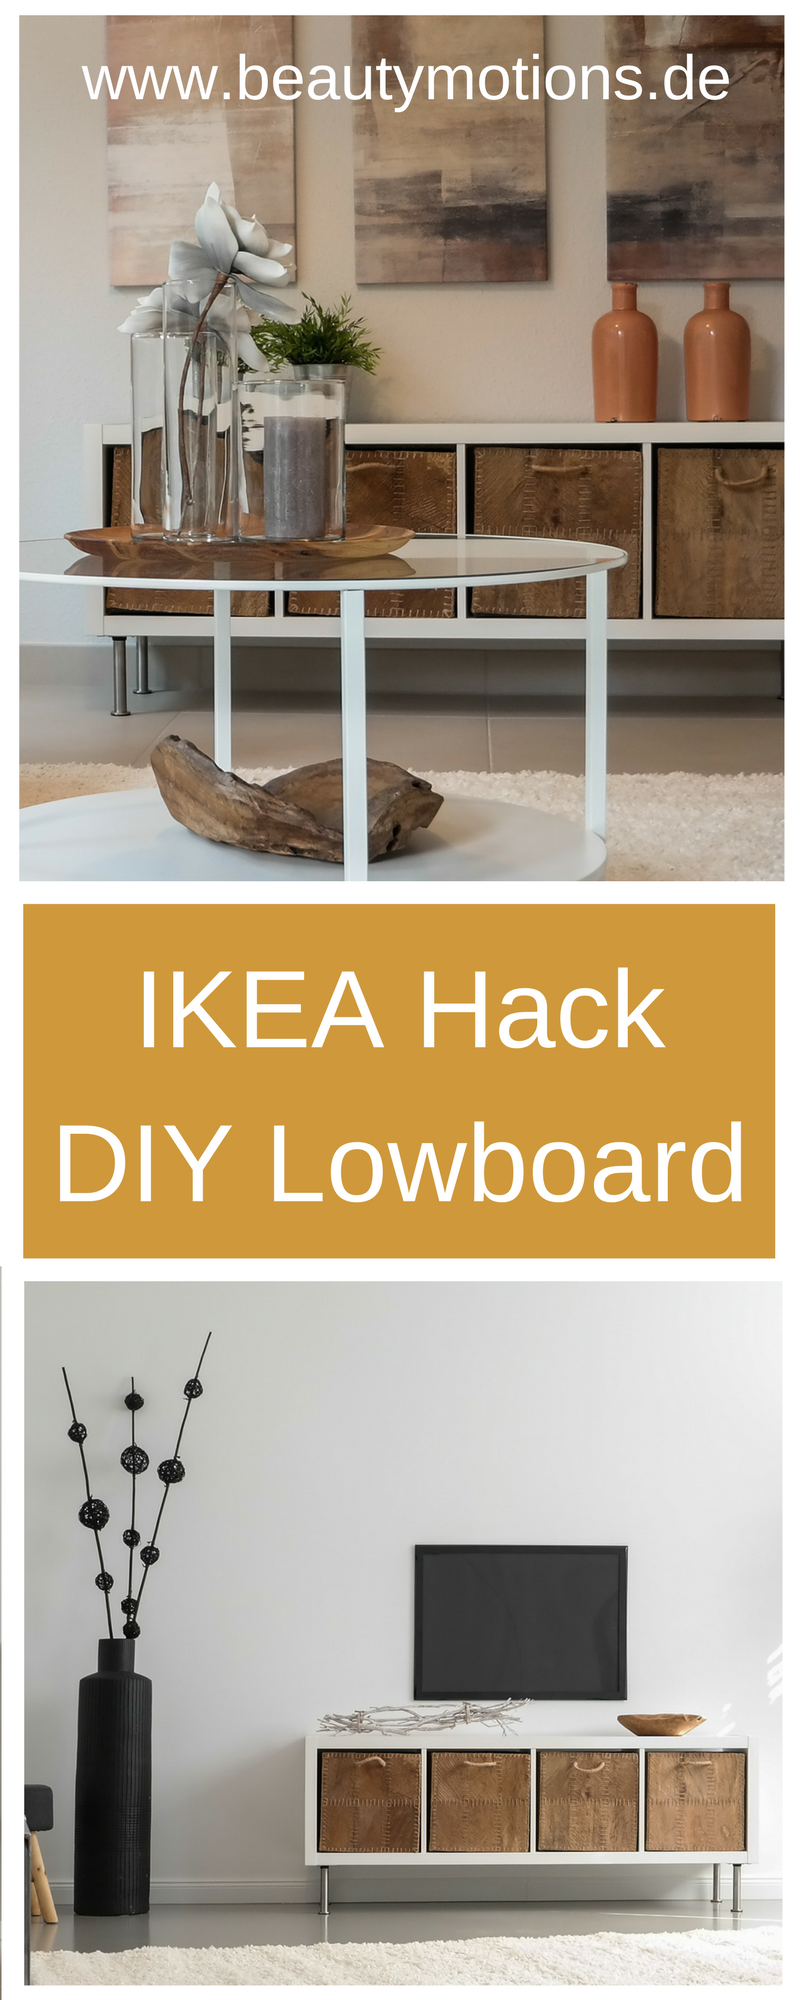 diy ikea hack lowboard selber machen beautymotions by petra bach. Black Bedroom Furniture Sets. Home Design Ideas